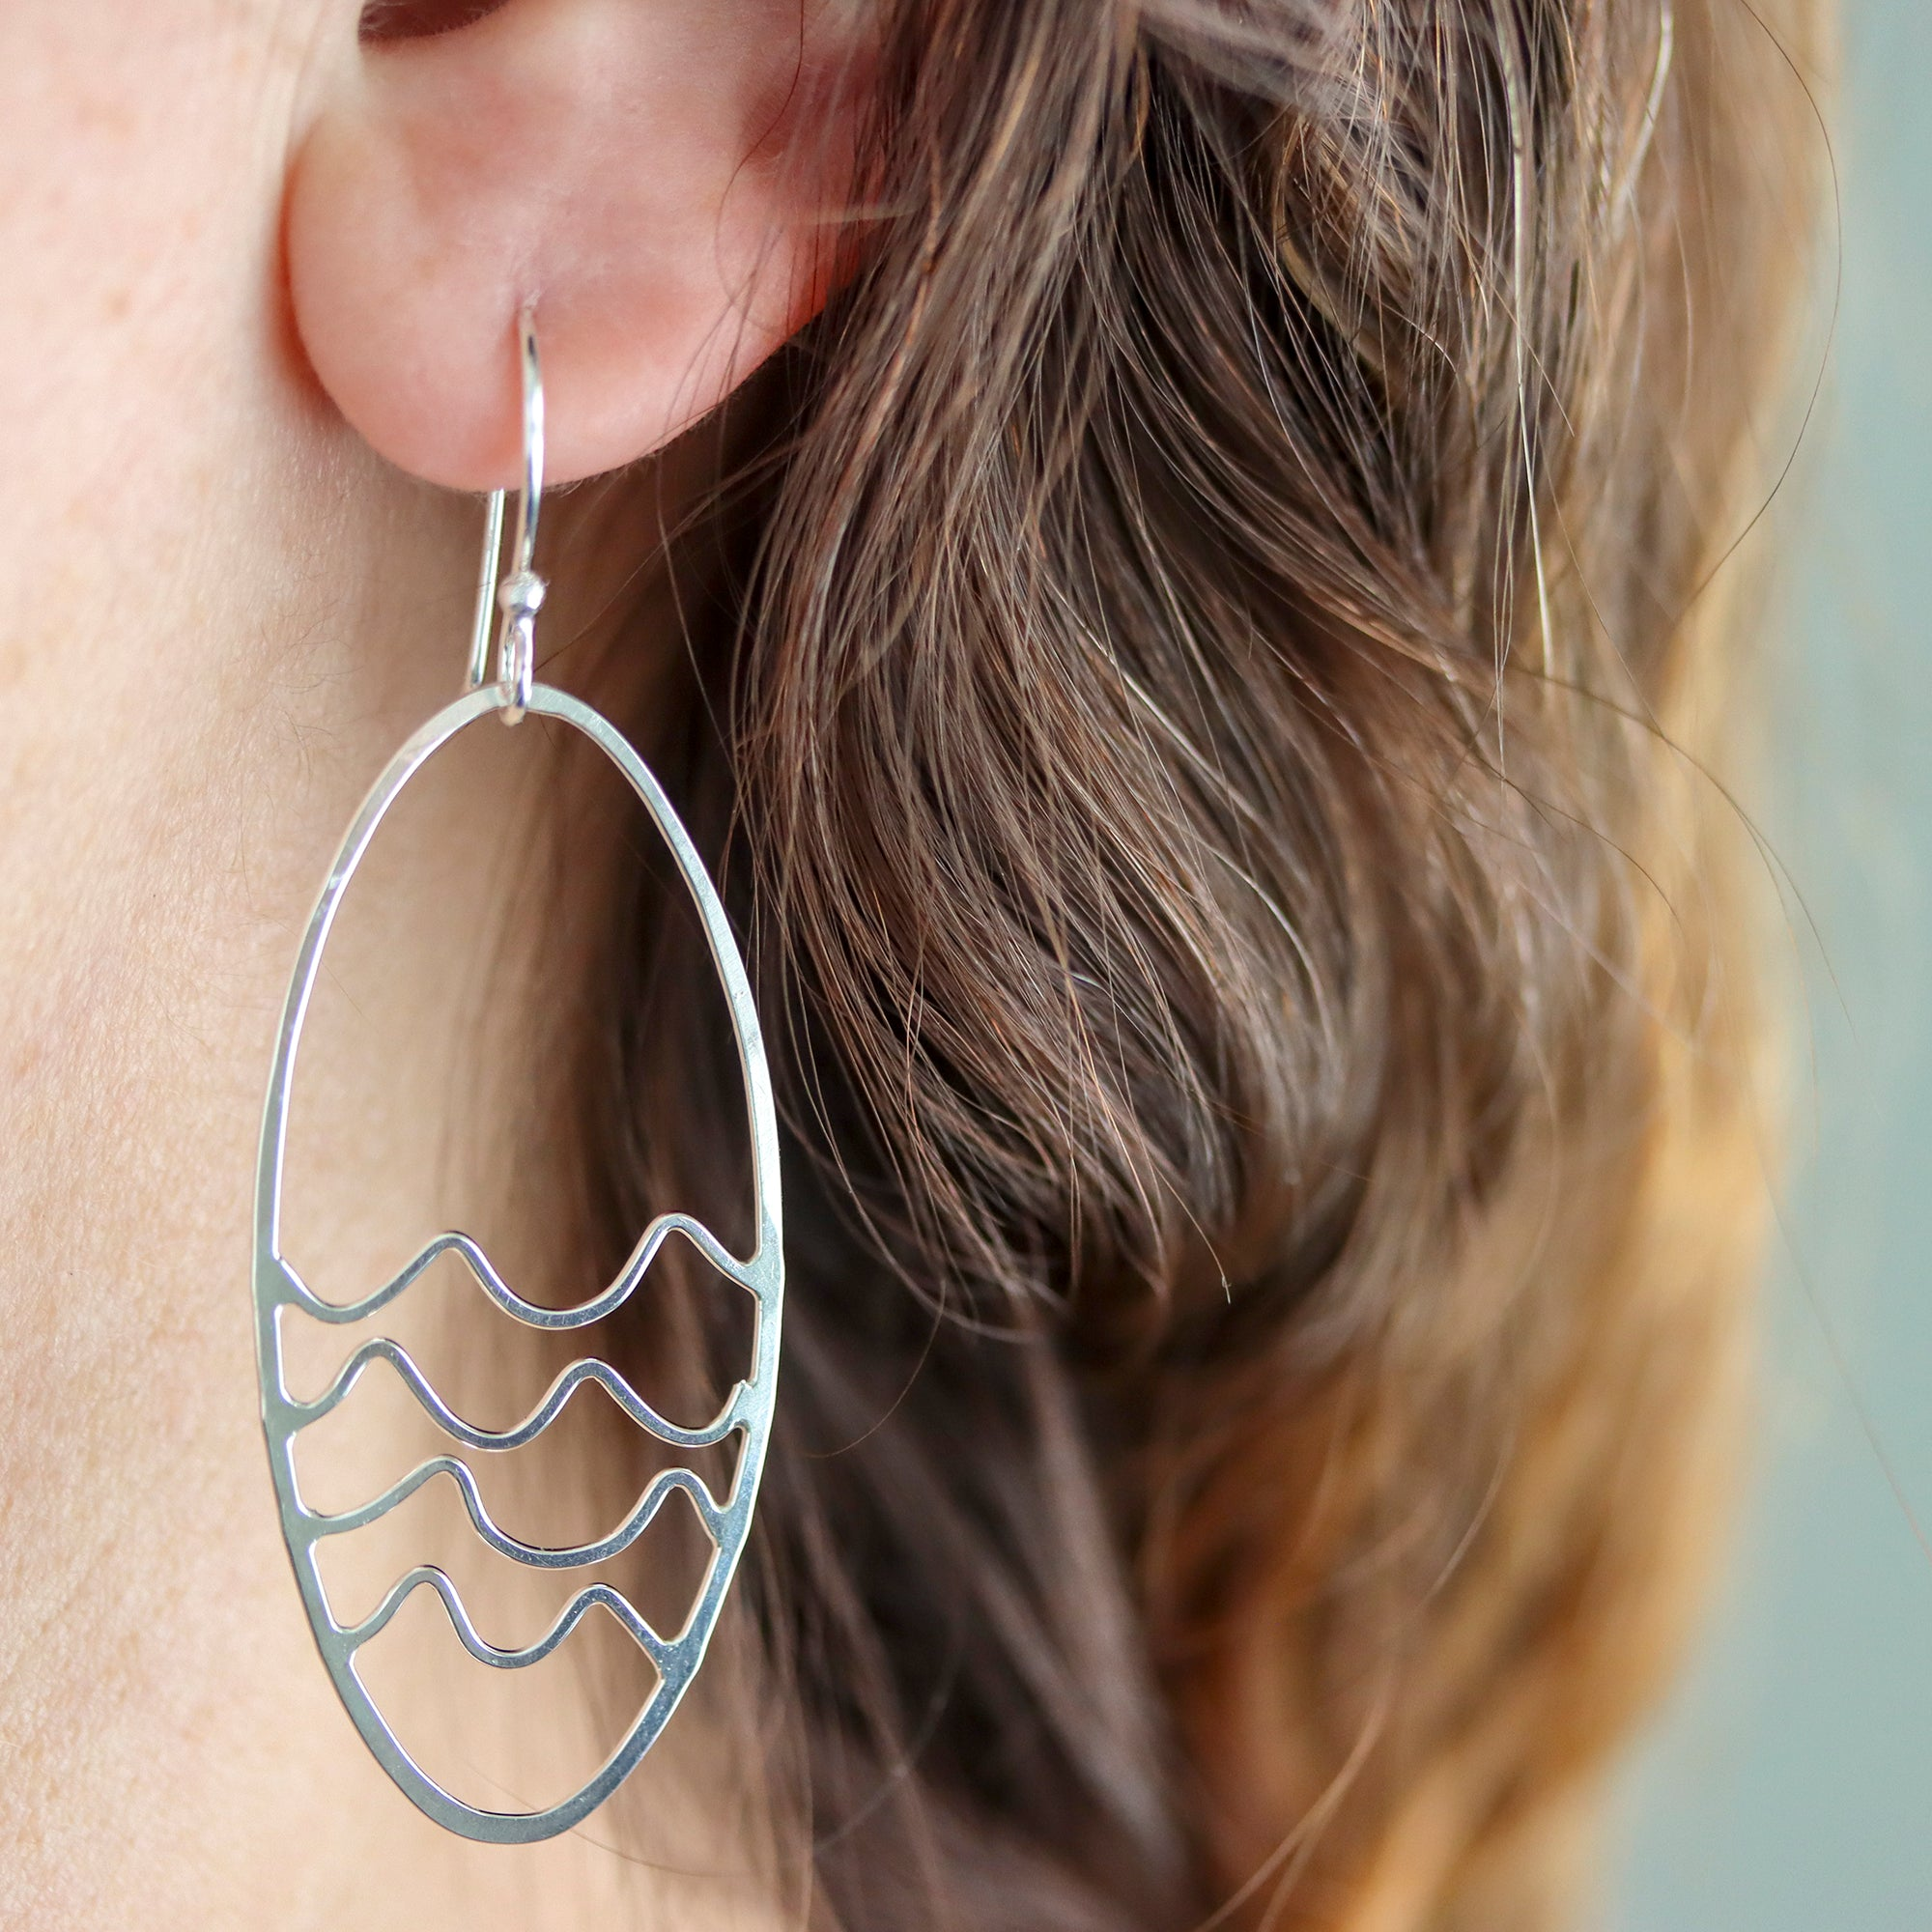 Rebecca Haas Jewelry Spring Collection - Swimming Hole Earrings